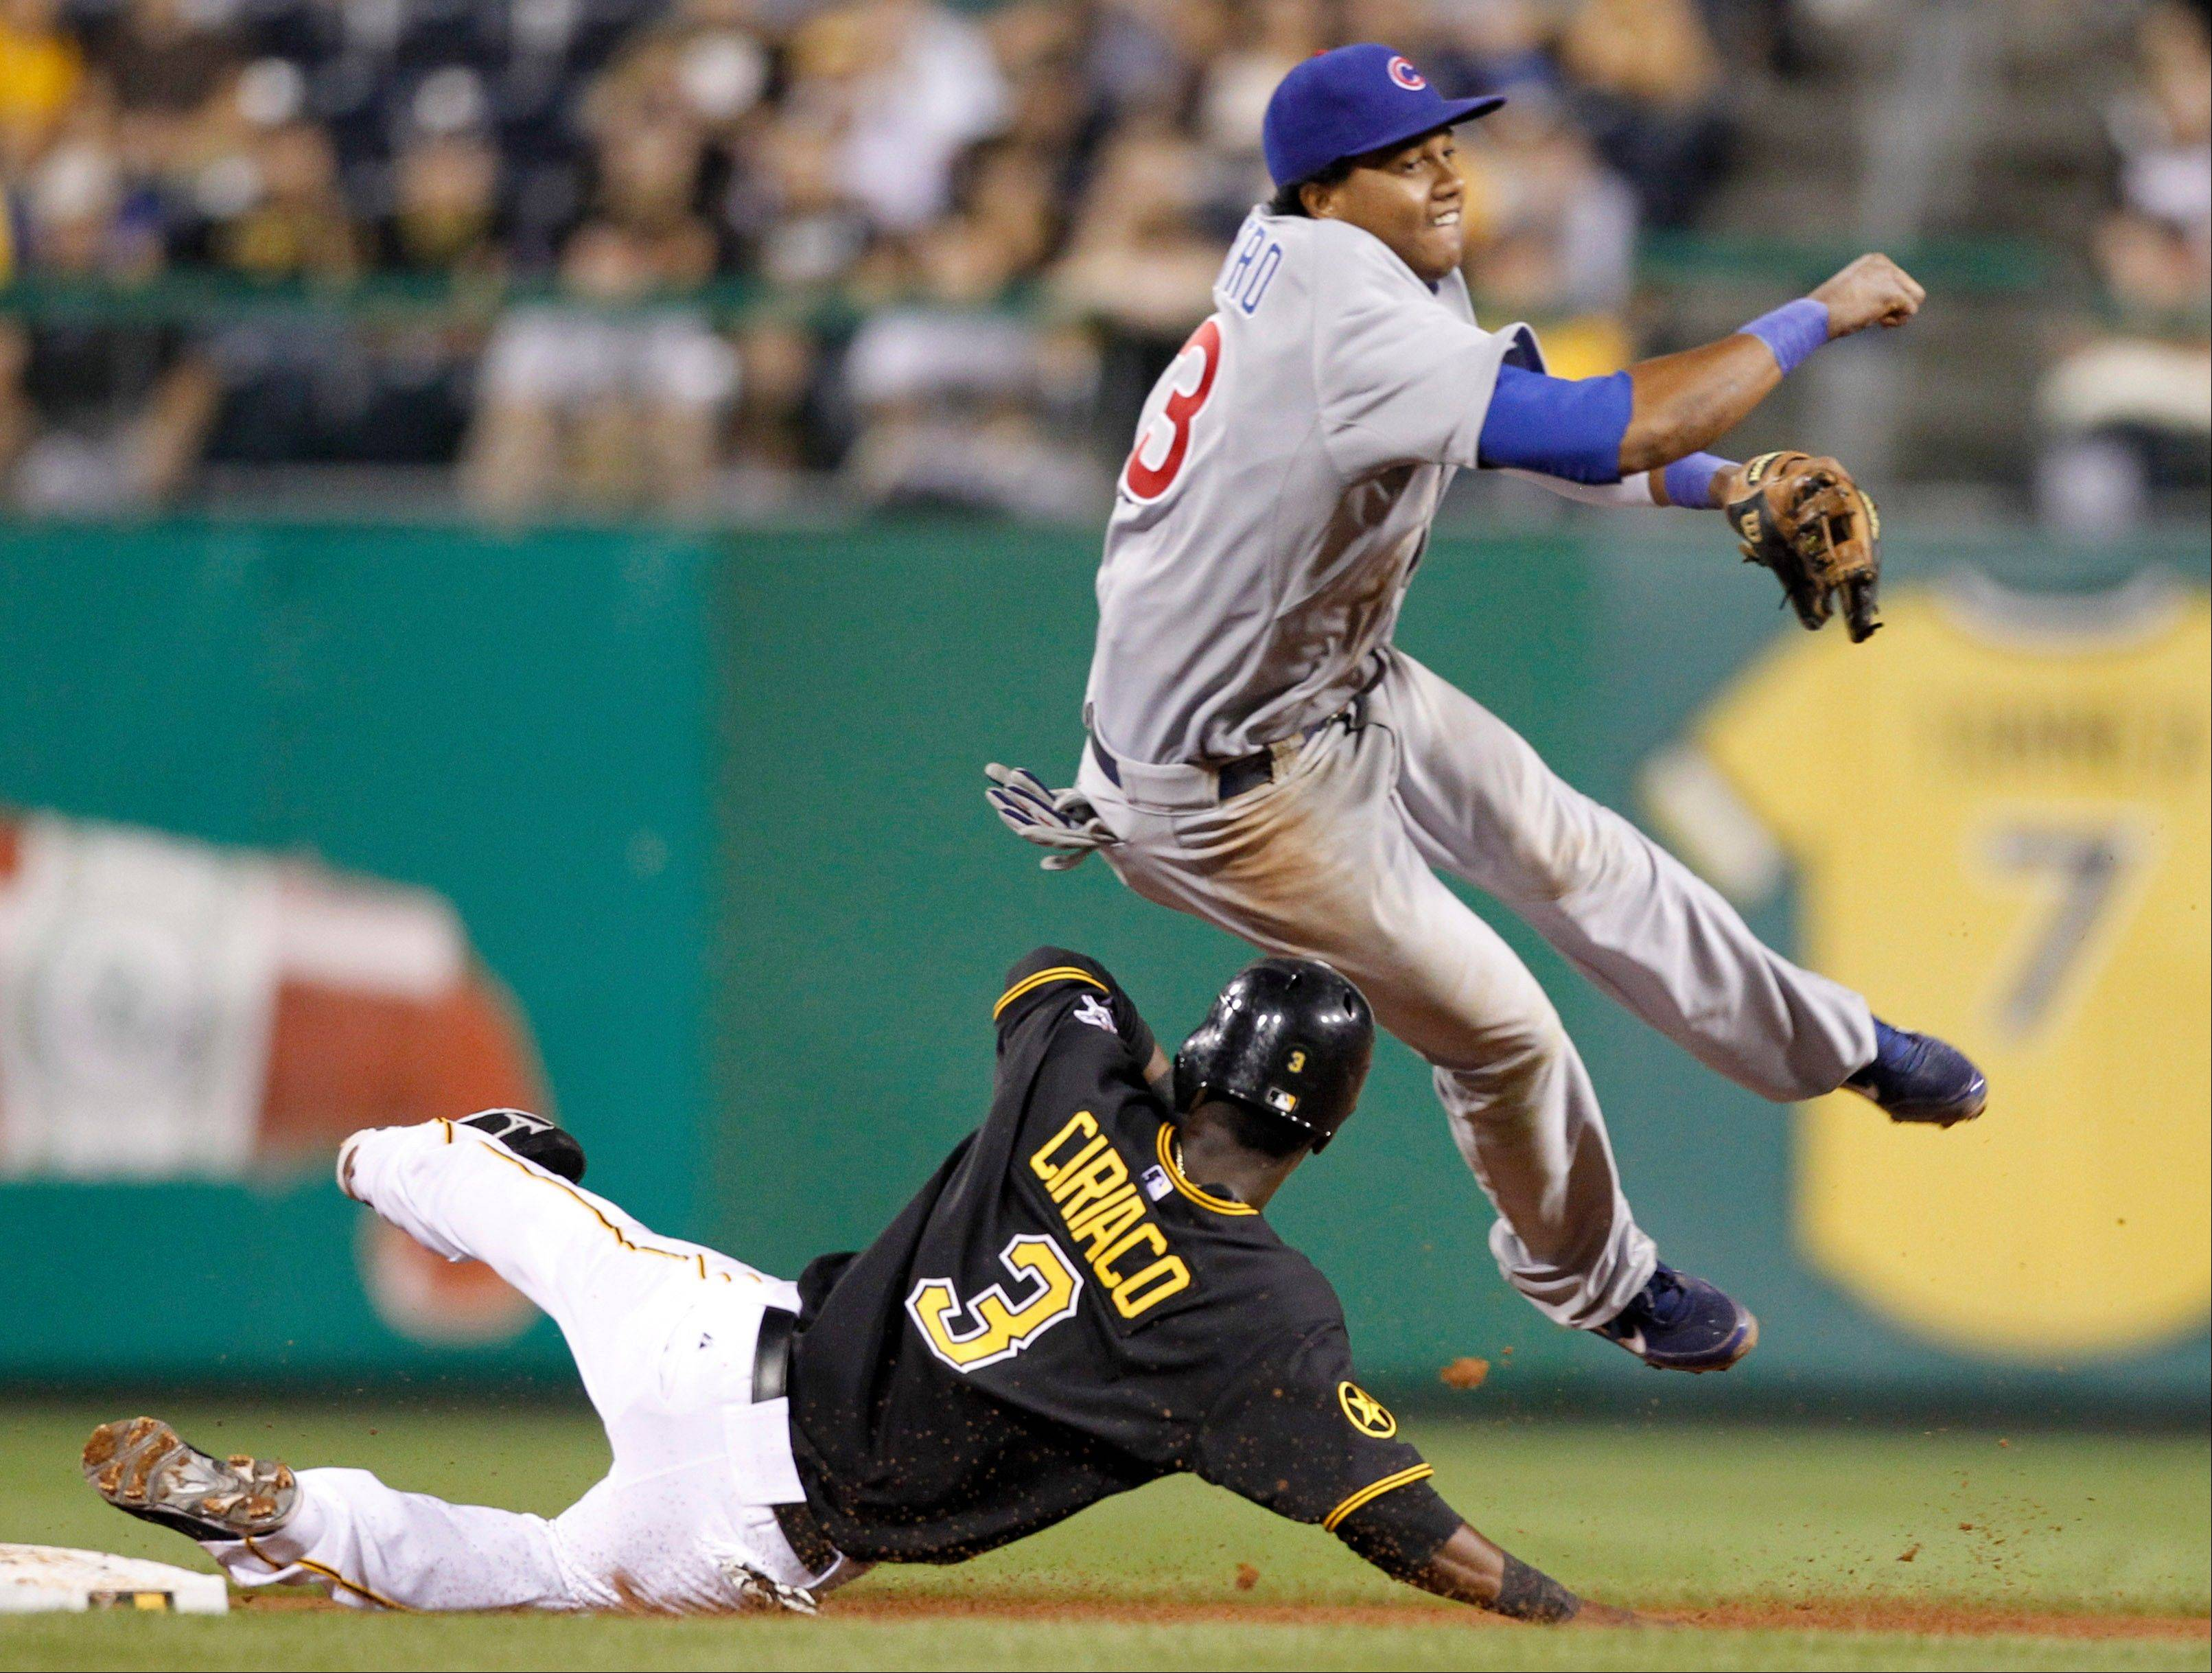 Shortstop Starlin Castro has been one of the few bright spots in a dismal season for the Cubs.